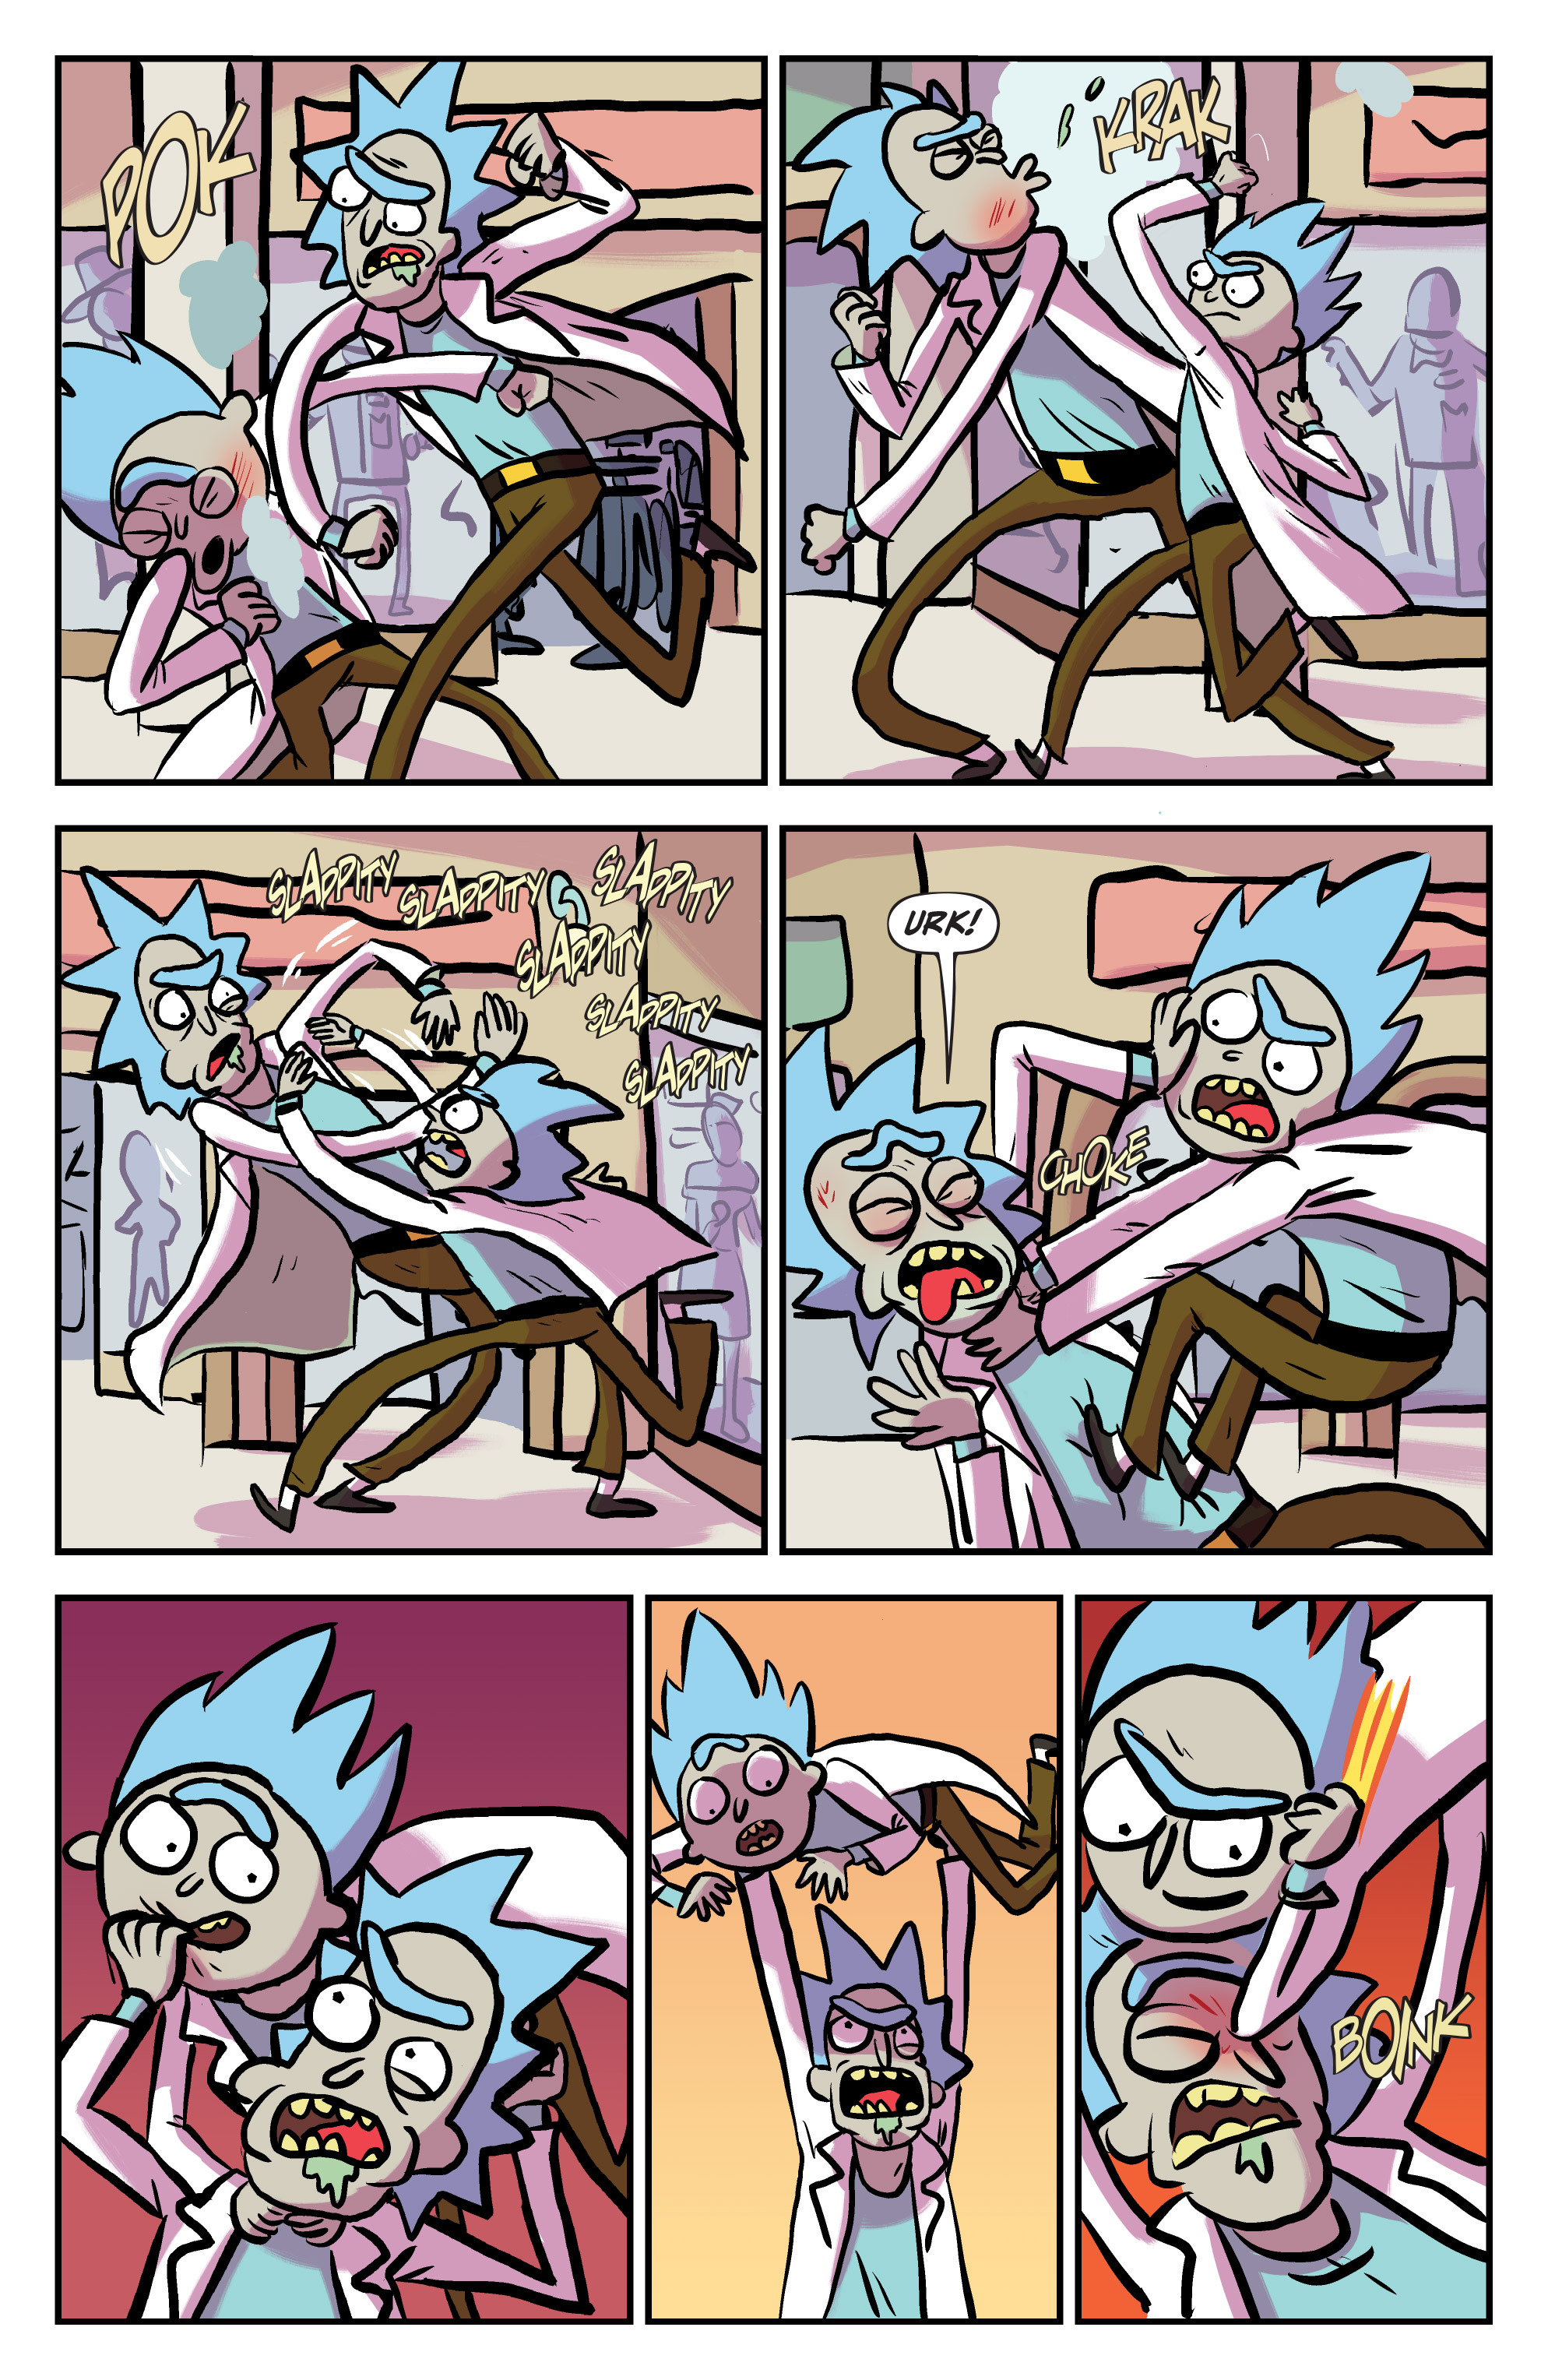 Read online Rick and Morty comic -  Issue #25 - 13